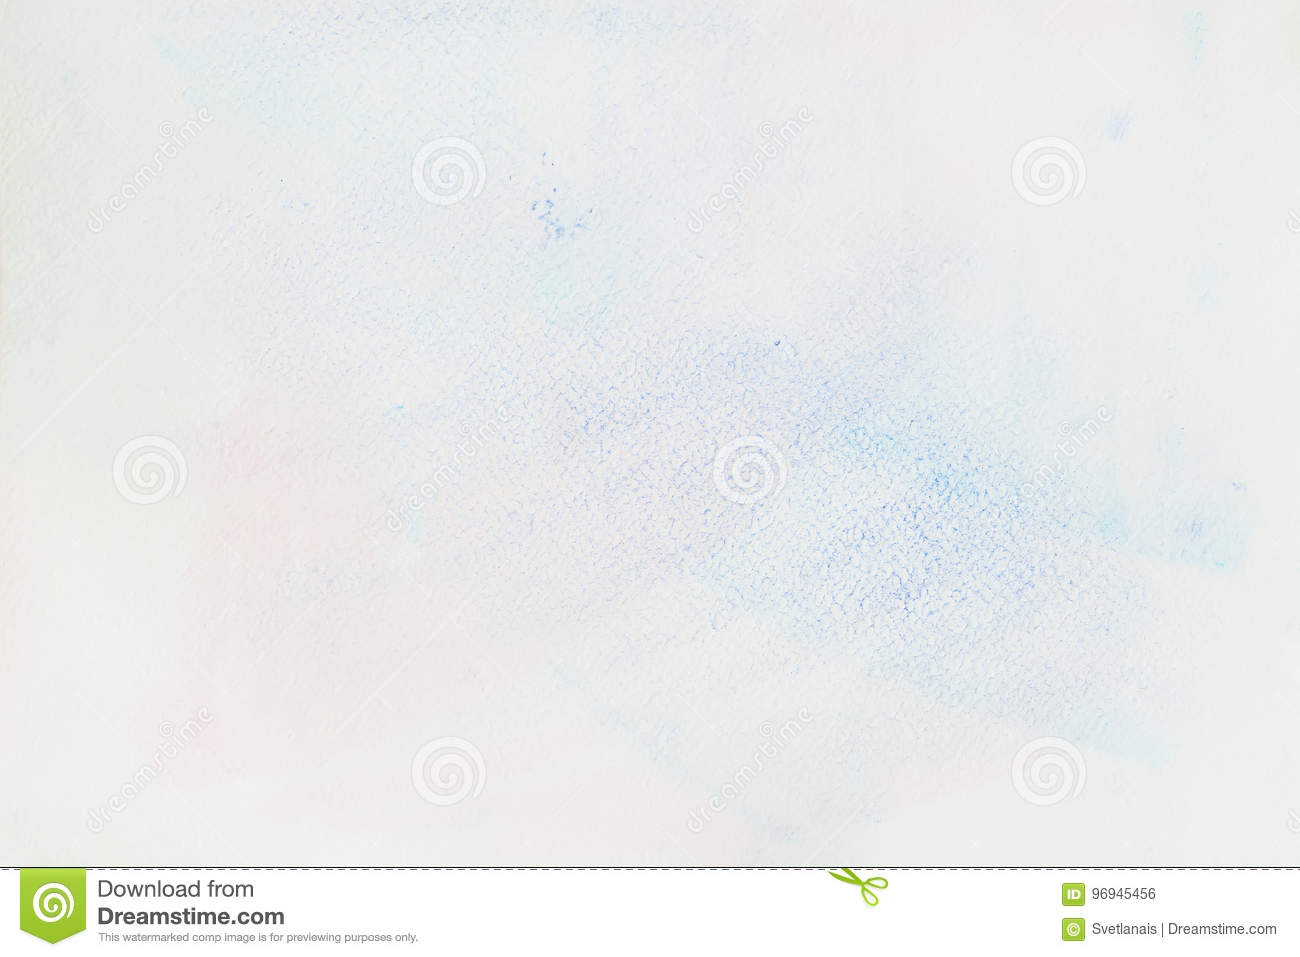 Very soft hand-drawn tender blue watercolor stain on white of water-color paper, paper grain texture. Abstract image for